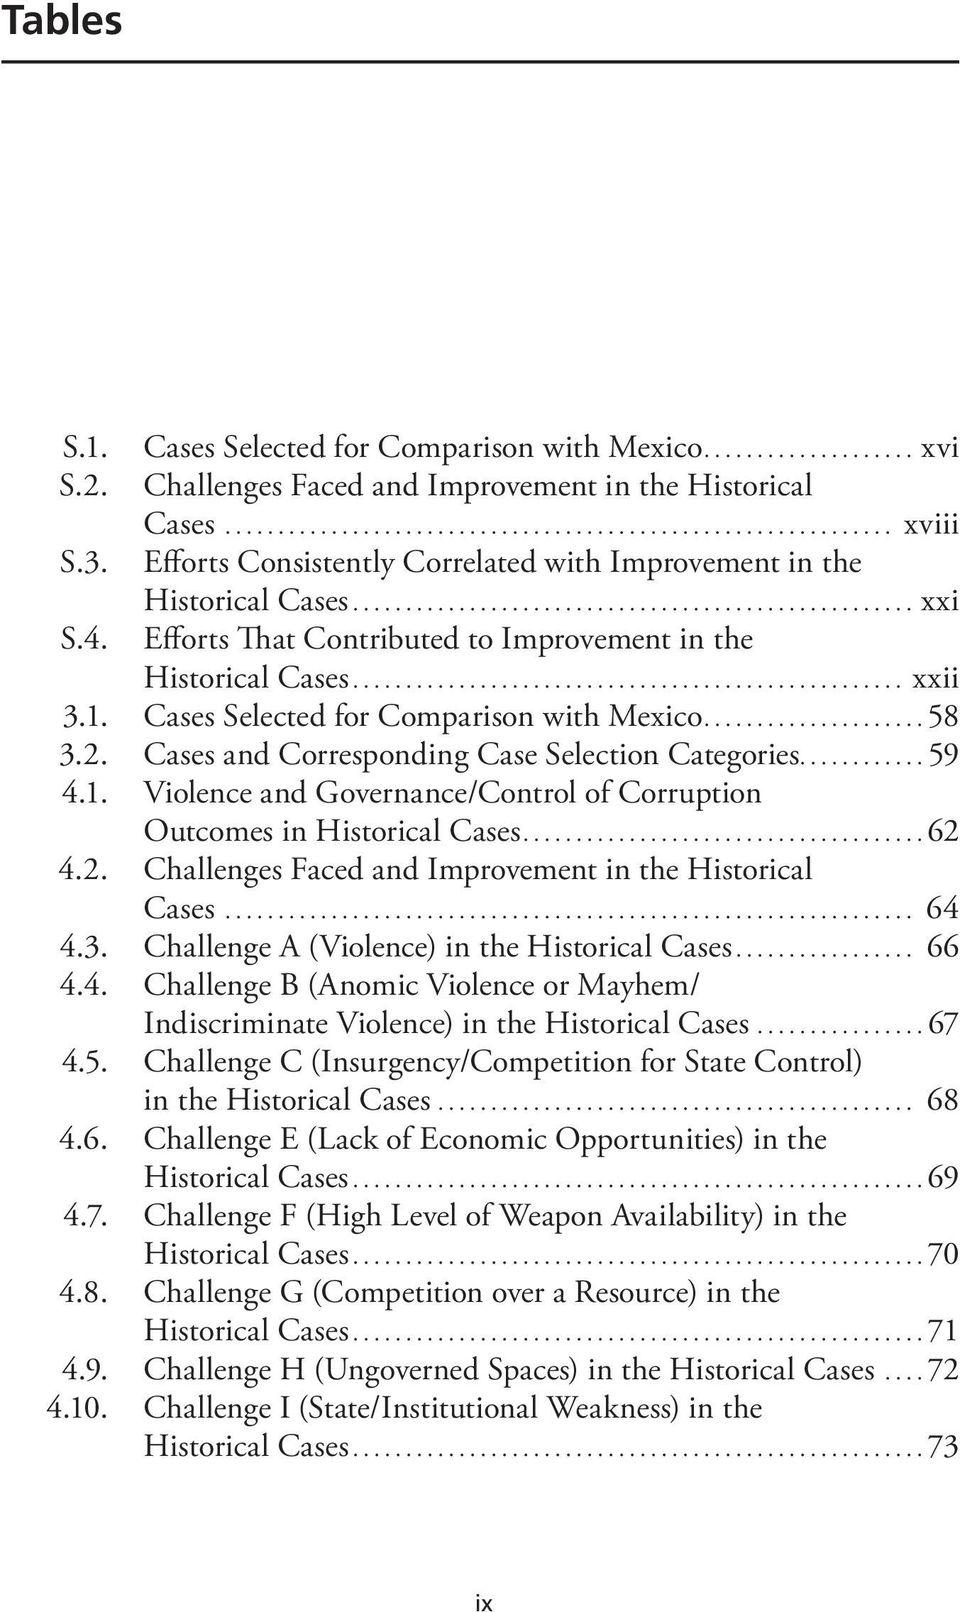 Cases Selected for Comparison with Mexico...58 3.2. Cases and Corresponding Case Selection Categories...59 4.1. Violence and Governance/Control of Corruption Outcomes in Historical Cases...62 4.2. Challenges Faced and Improvement in the Historical Cases.